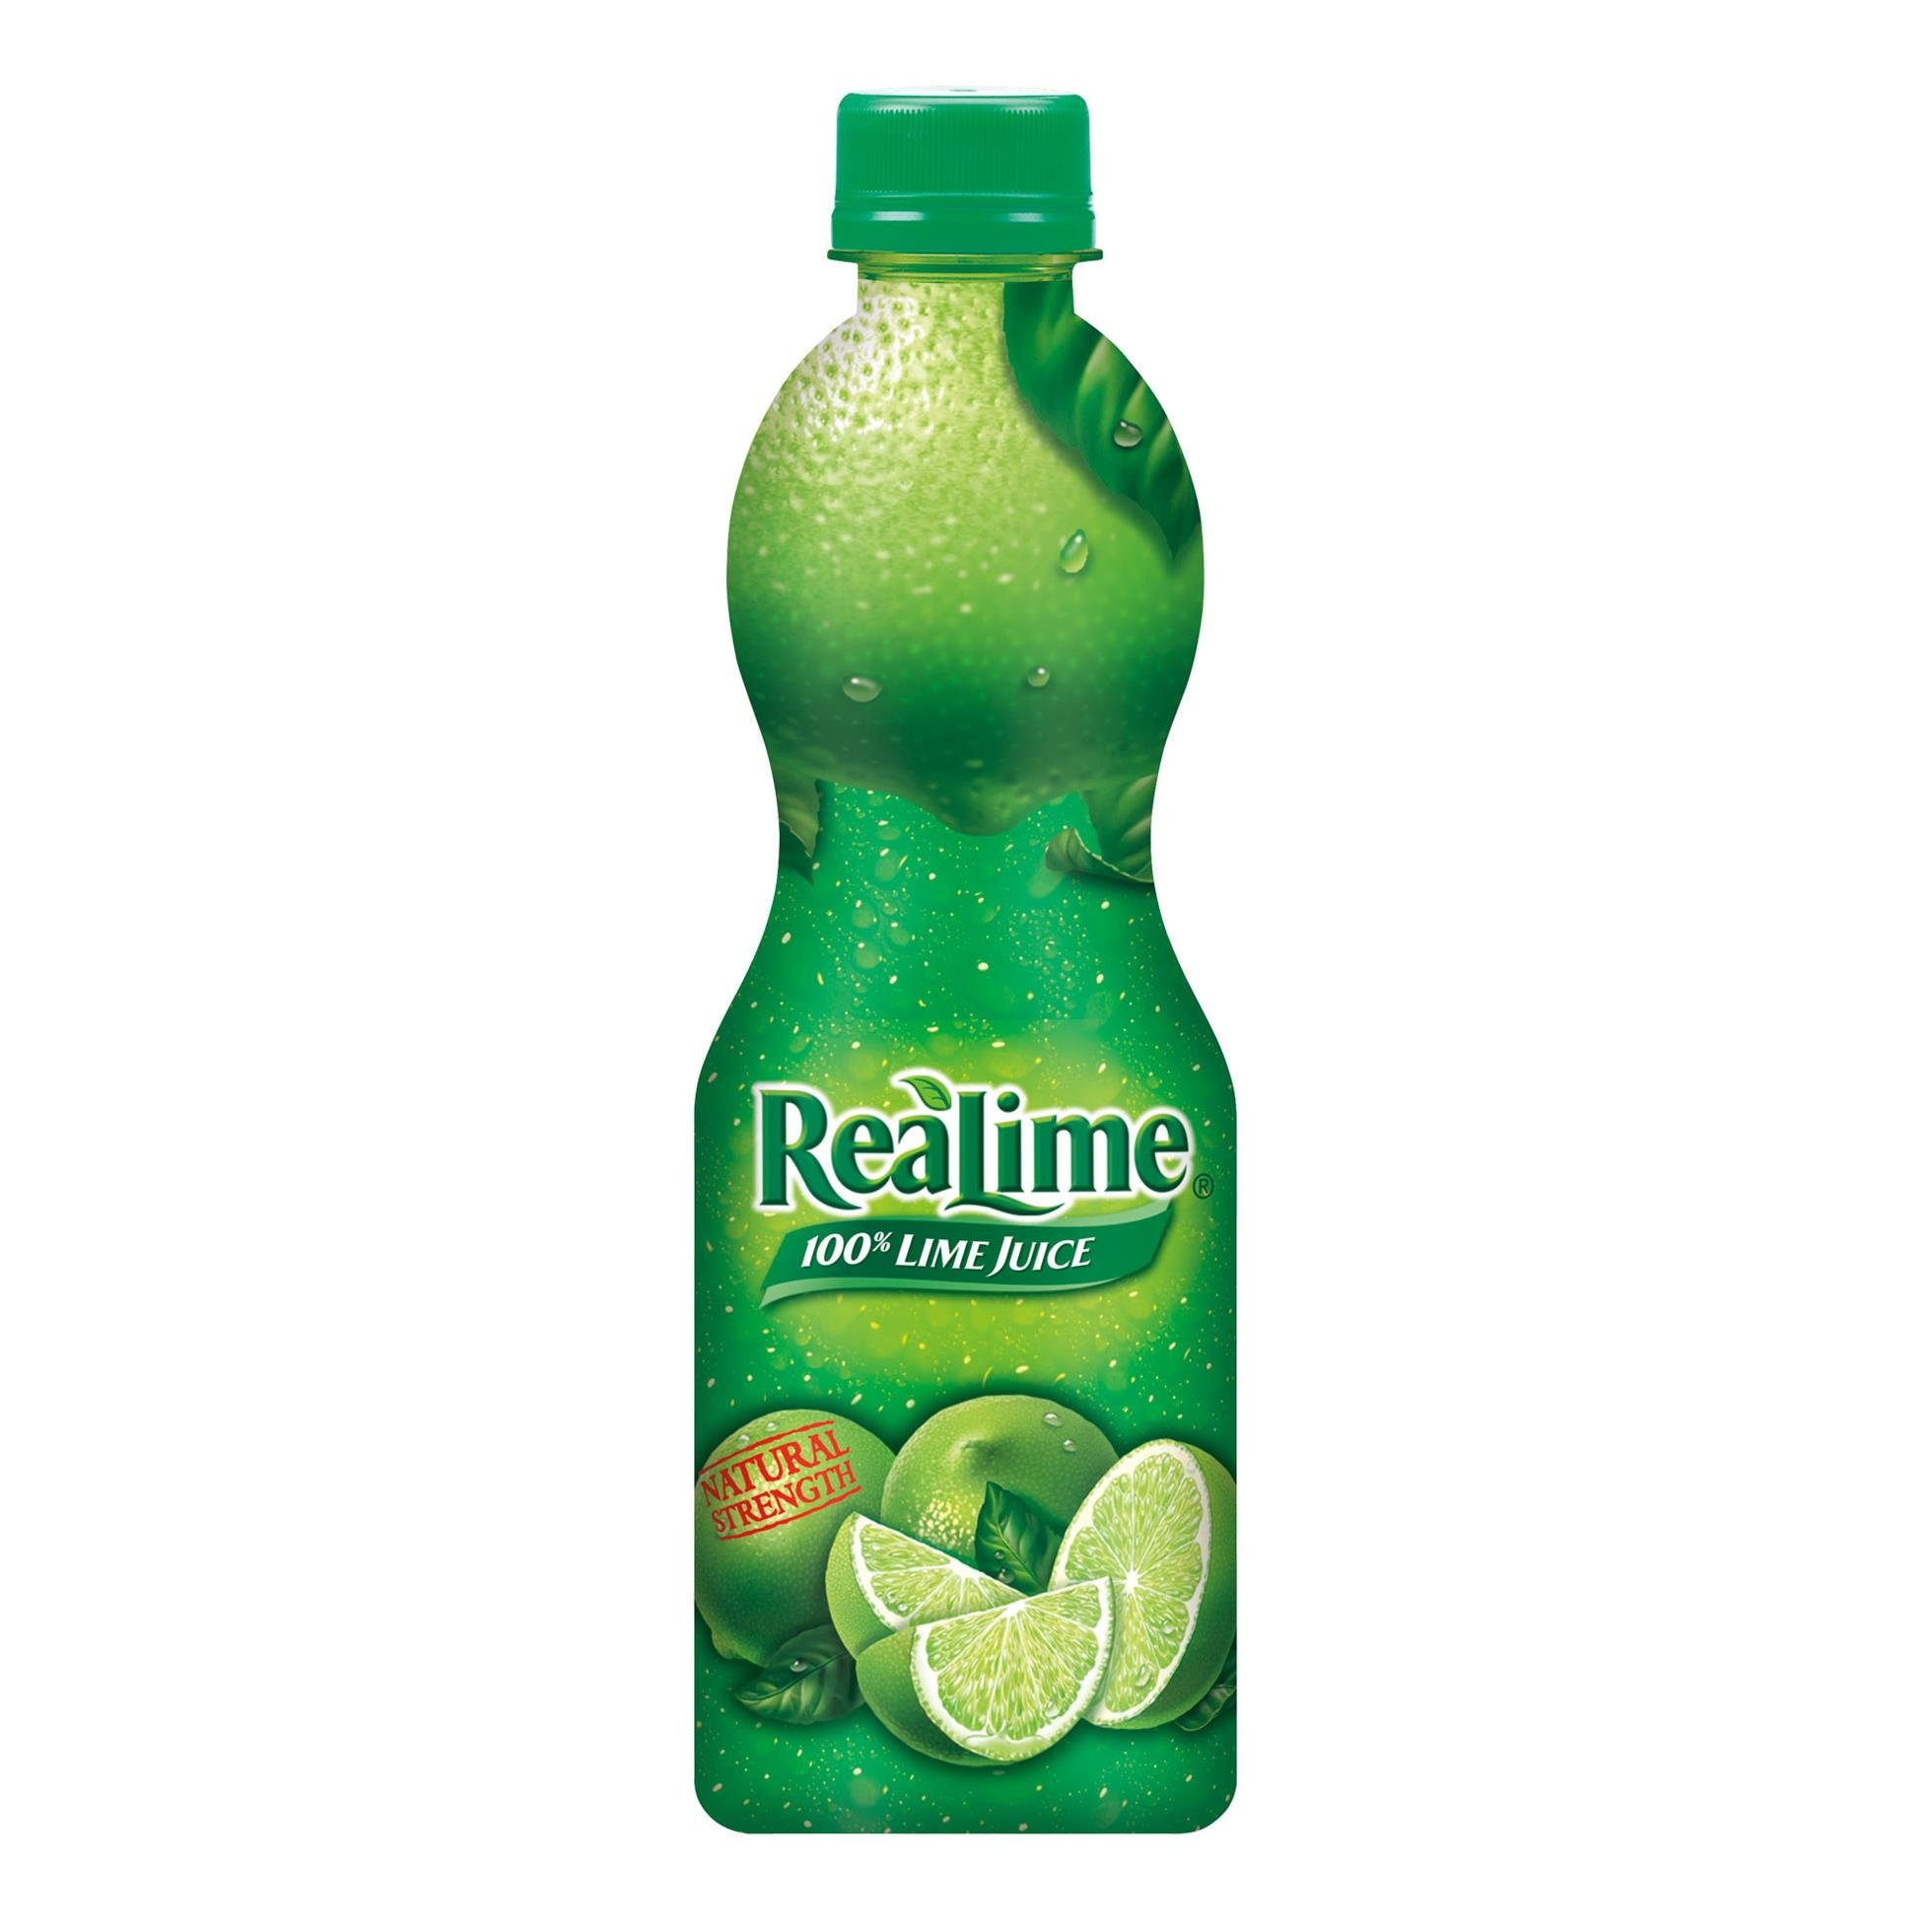 ReaLime 100% Lime Juice, 8 fl oz bottles (Pack of 12) by Realime (Image #1)